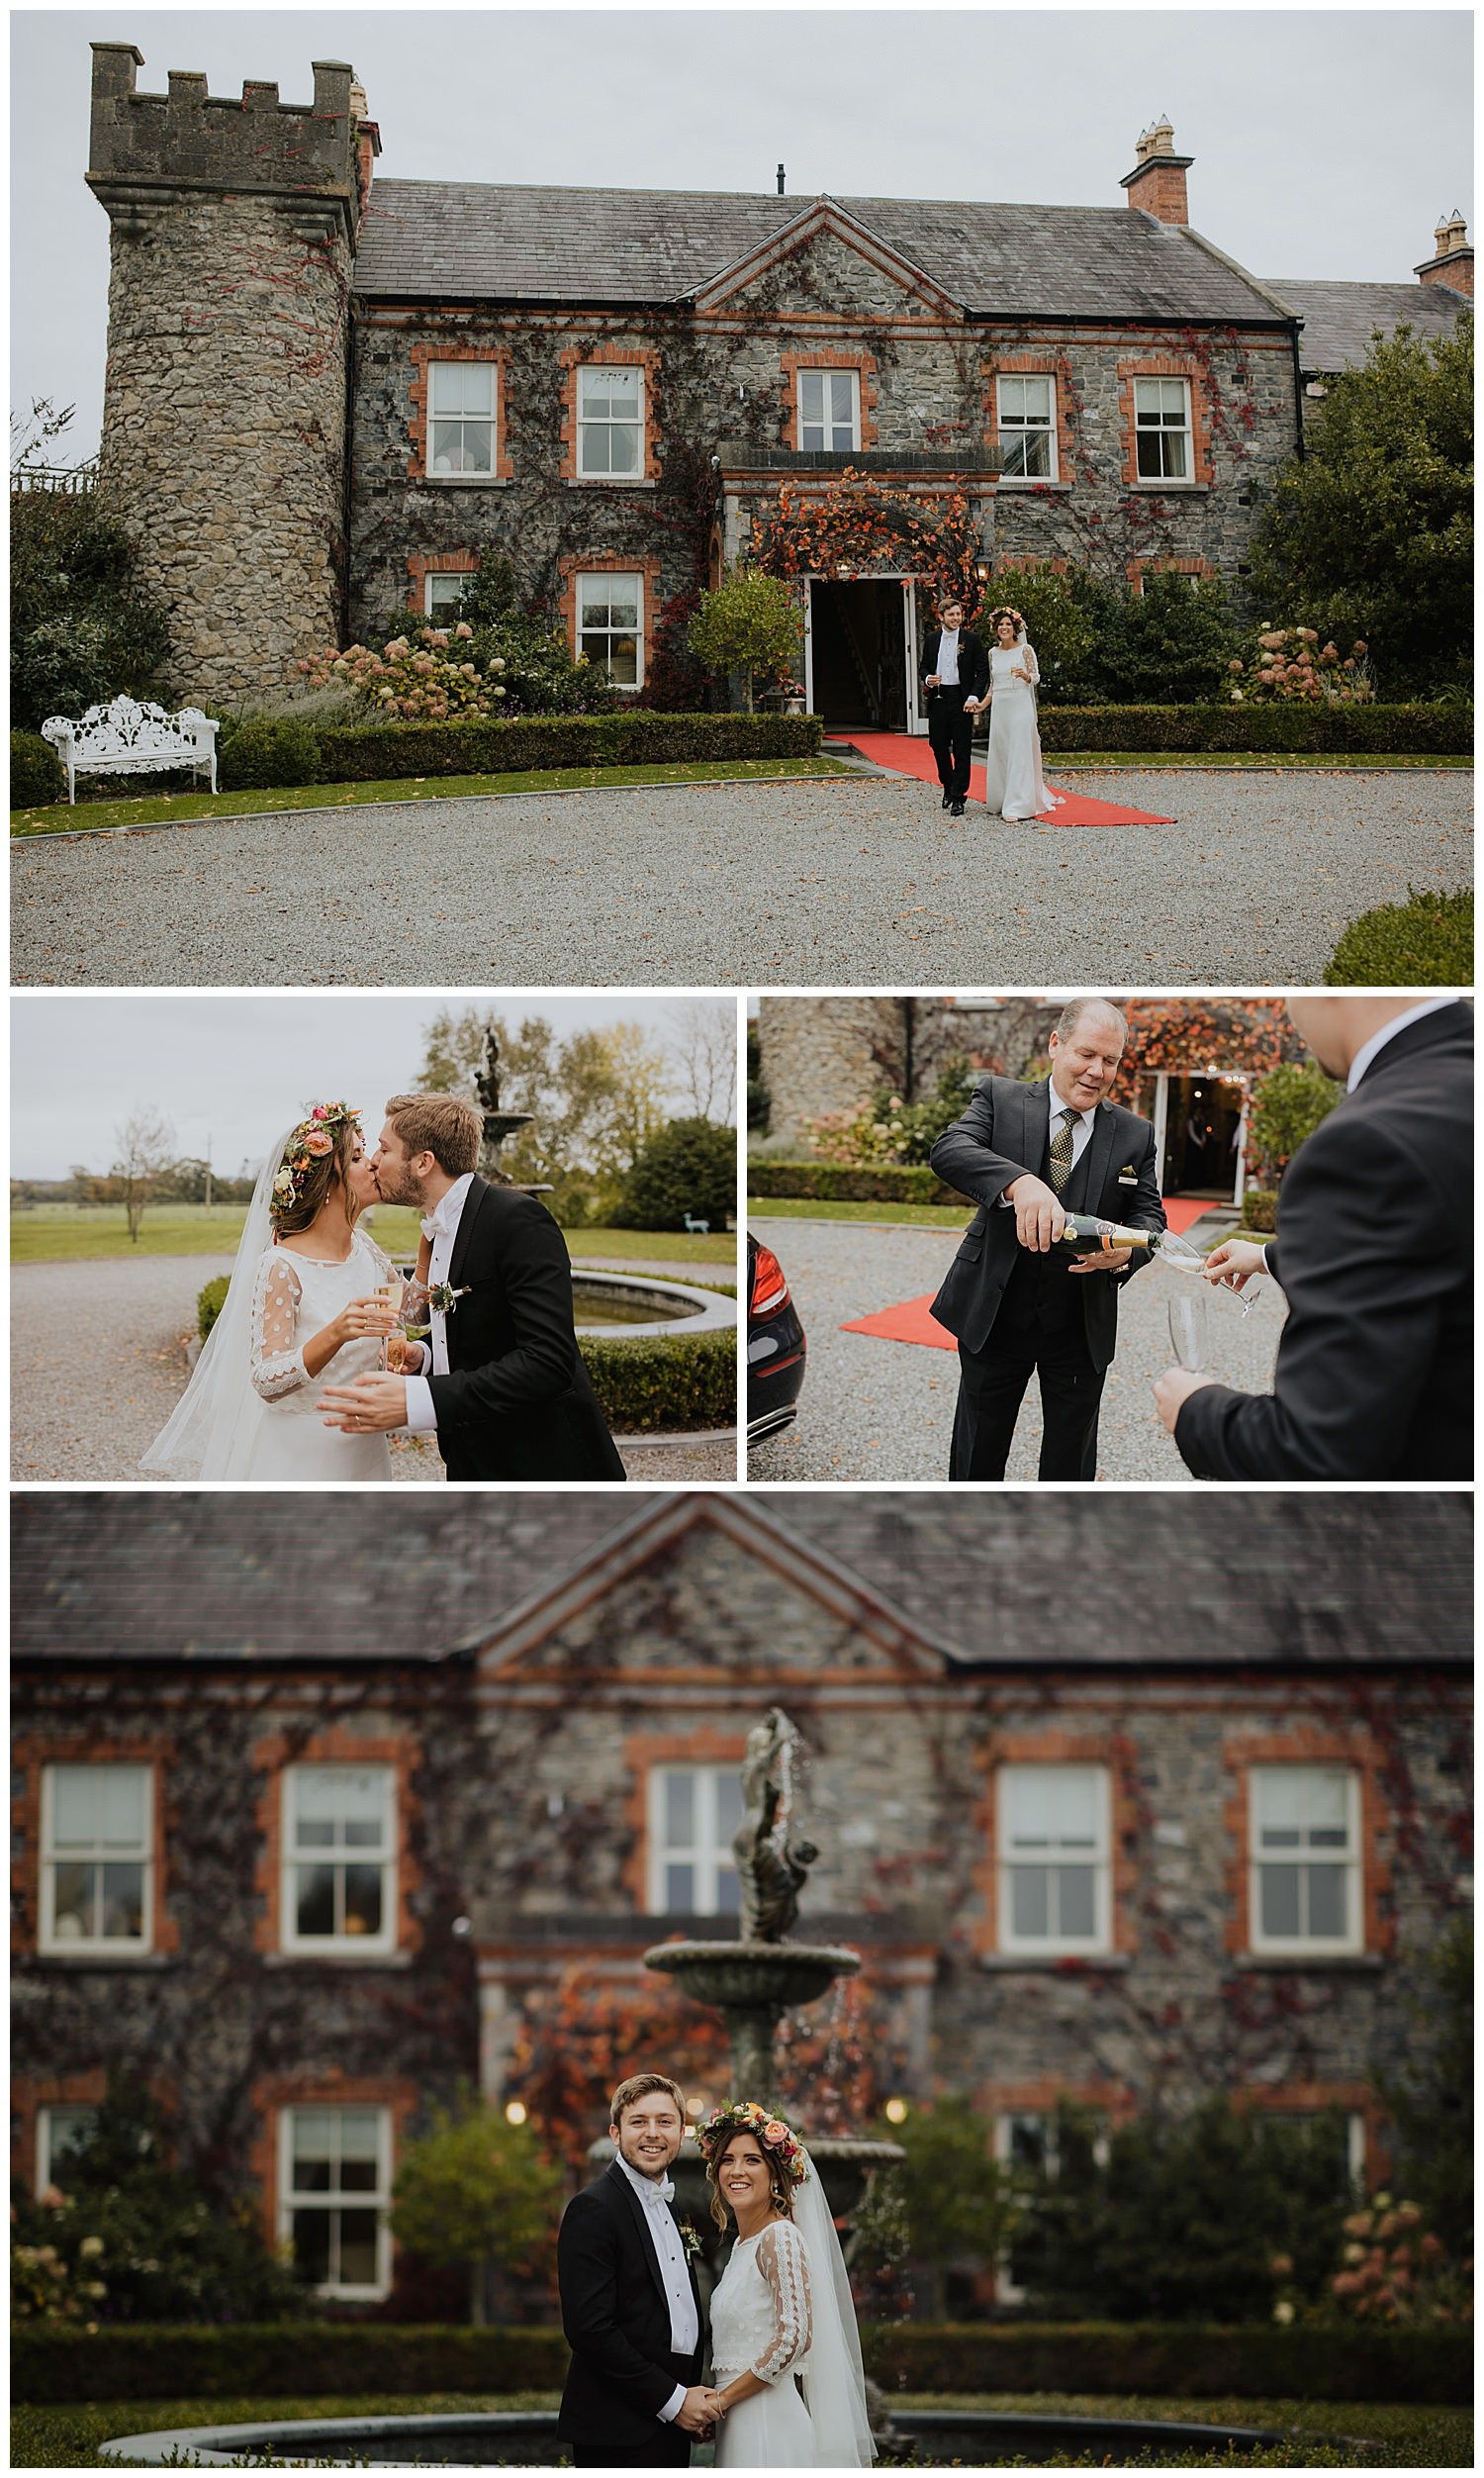 a+s_ballymagarvey_village_wedding_photographer_livia_figueiredo_31.jpg